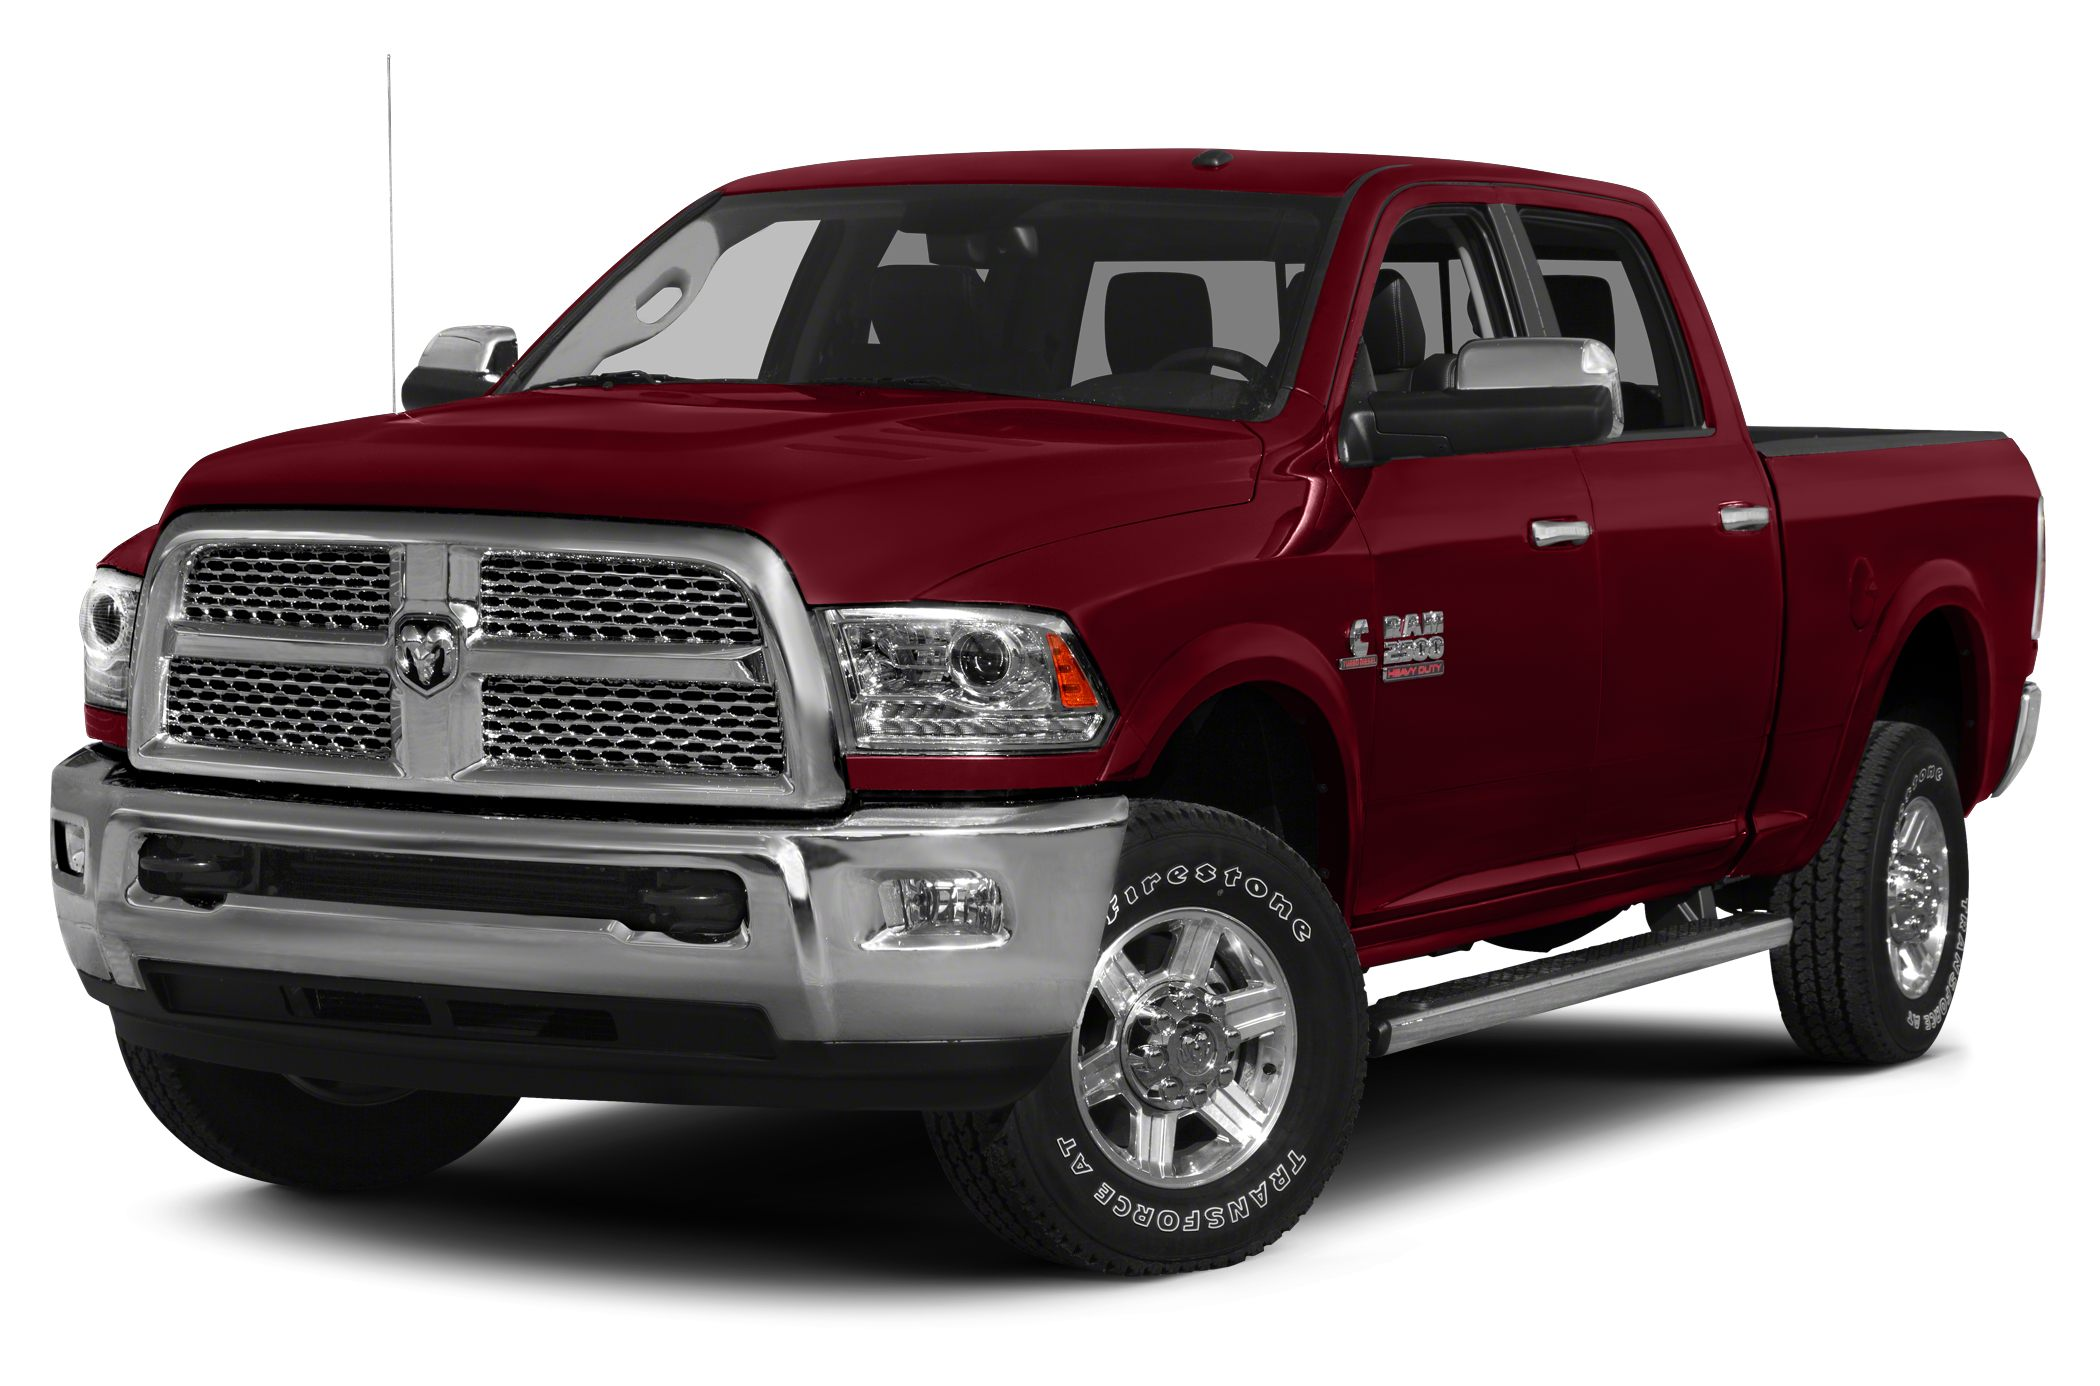 2015 RAM 2500 Laramie Crew Cab Pickup for sale in Mesa for $63,910 with 0 miles.